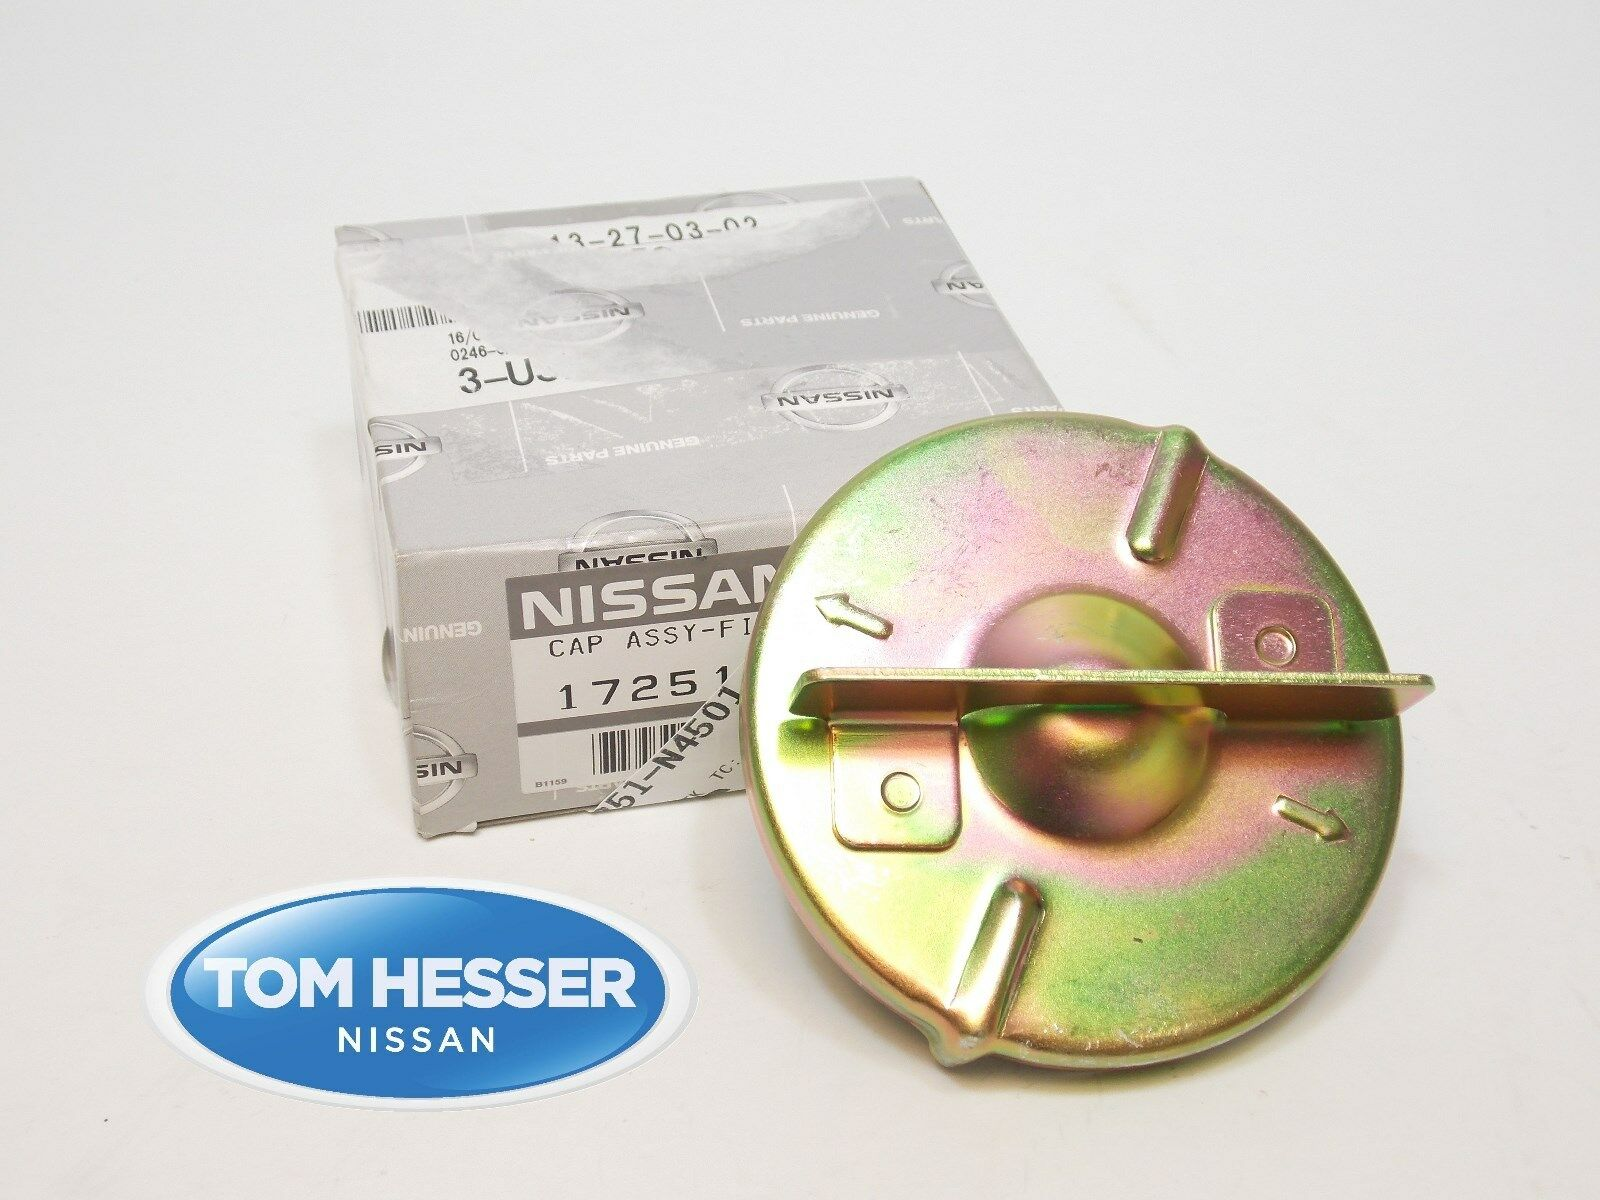 Genuine Nissan Oem Datsun 240z 260z 280z Fuel Filler Cap Brand New Filter 1 Of 1only 0 Available